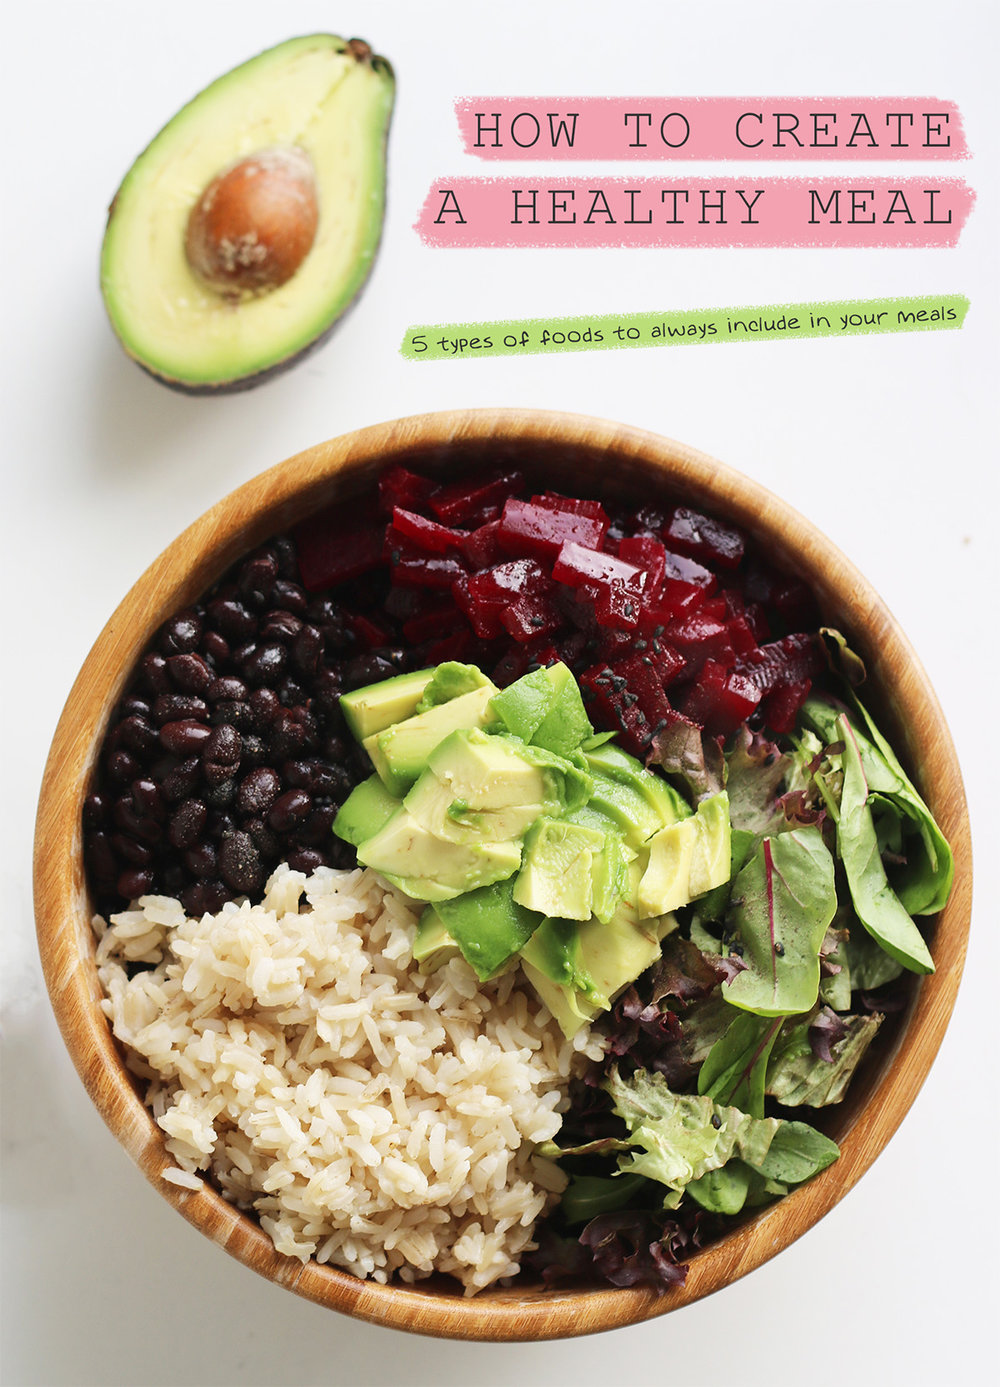 how-to-create-a-healthy-meal-free-ebook.jpg